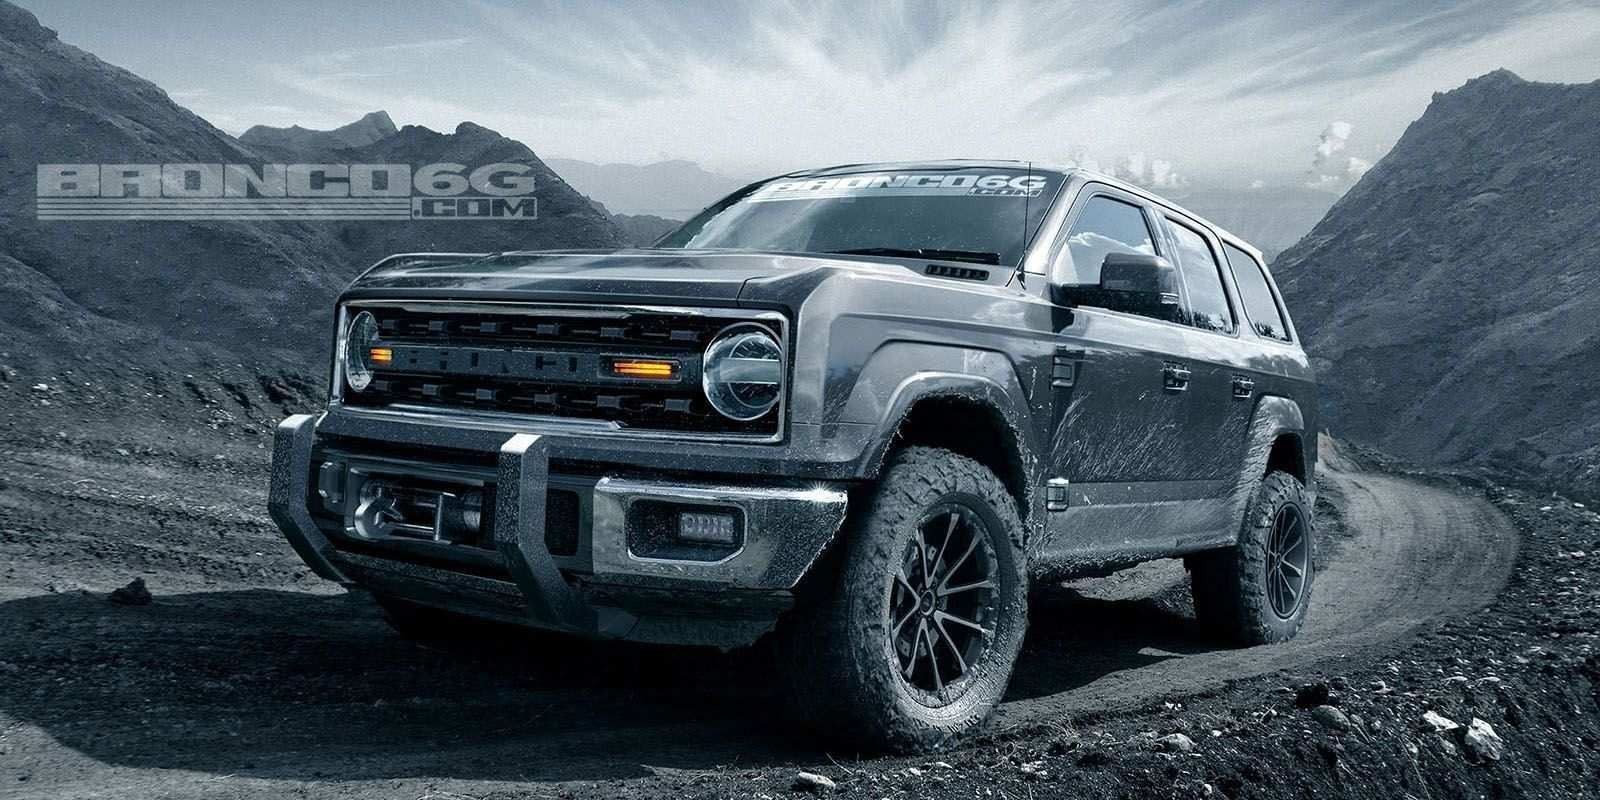 88 All New 2019 Ford Troller T4 Redesign and Concept for 2019 Ford Troller T4